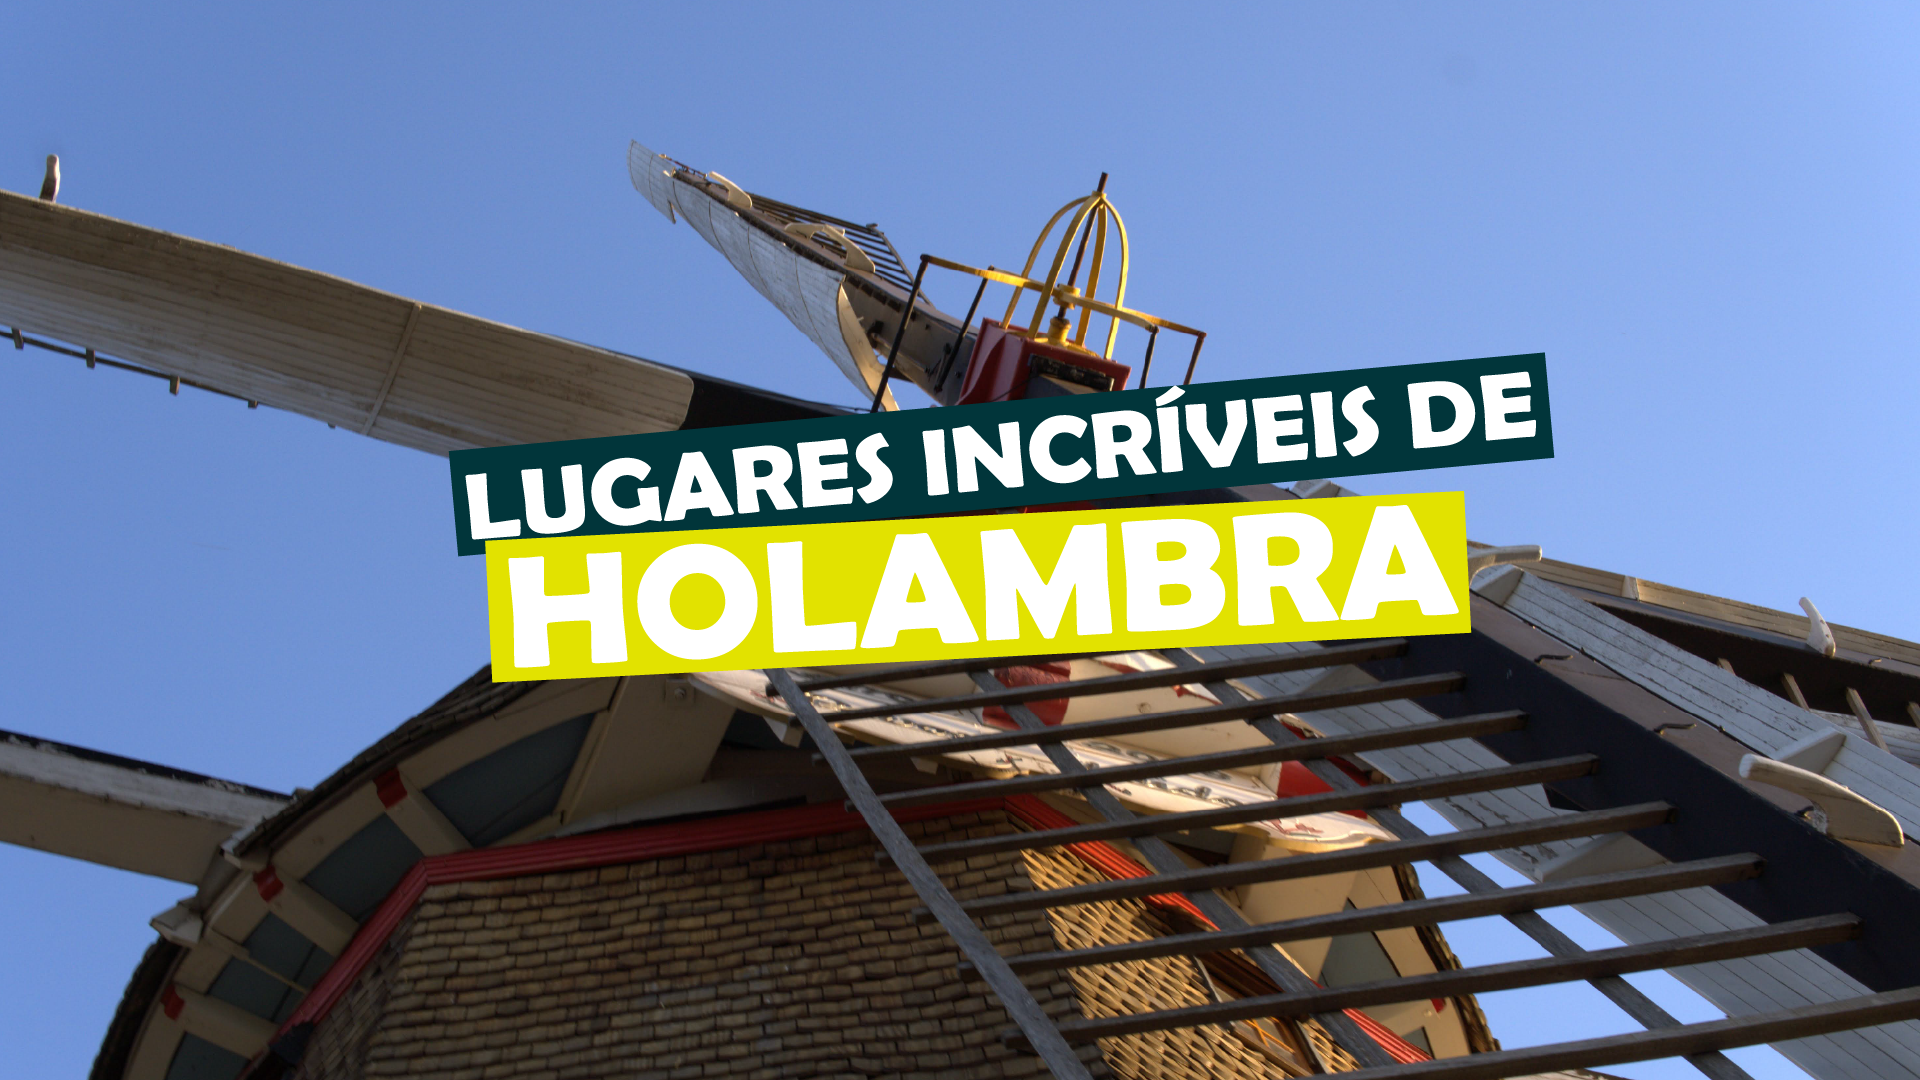 You are currently viewing lugares incríveis de holambra